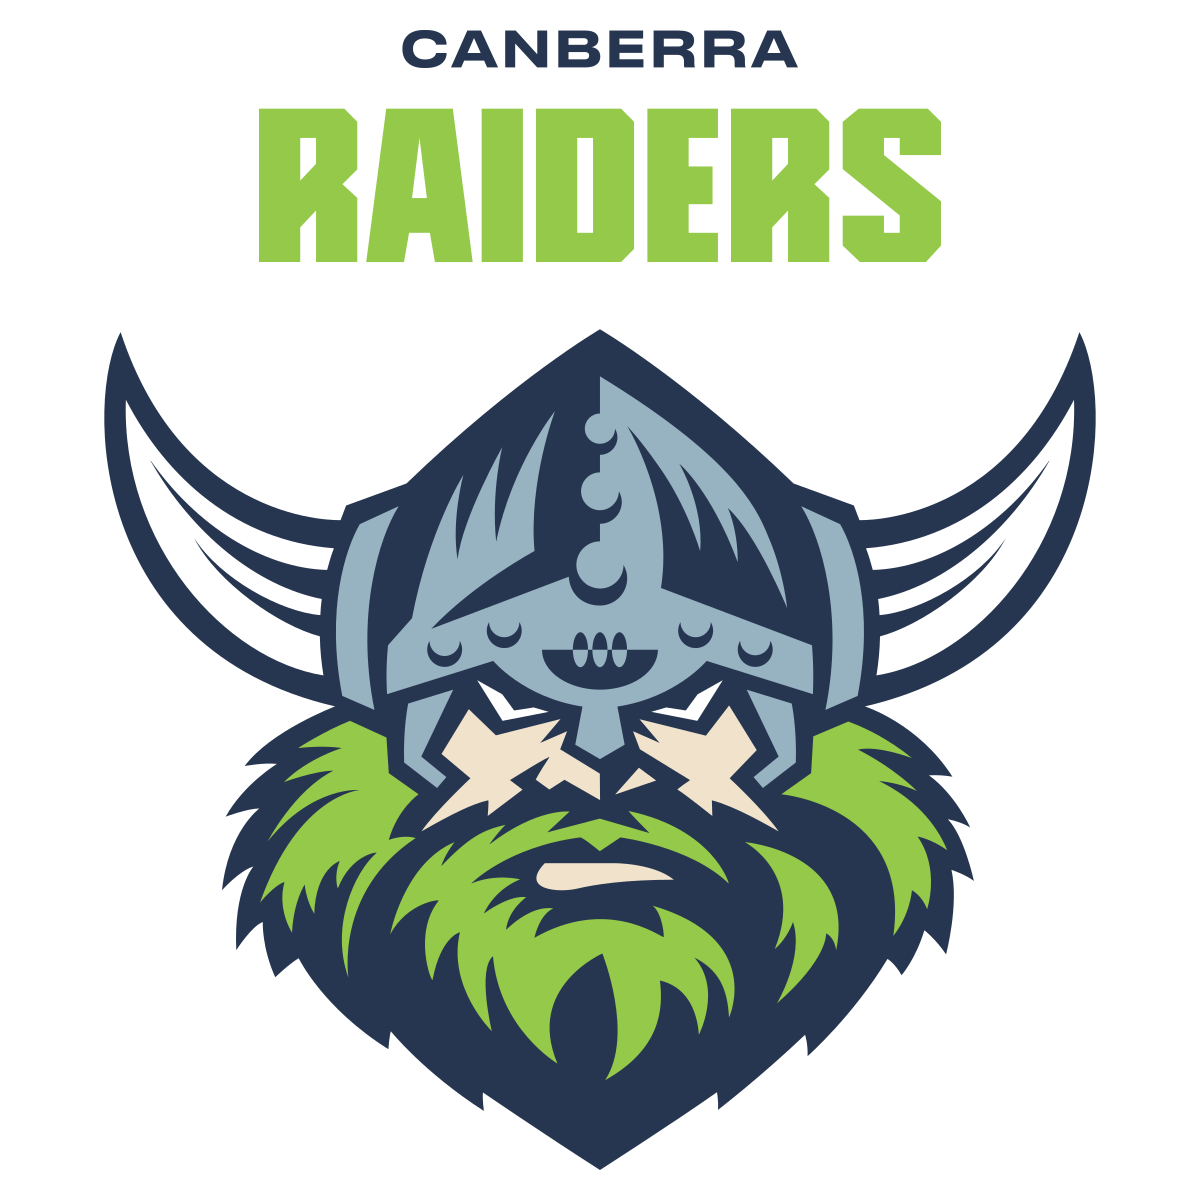 Programme TV Canberra Raiders